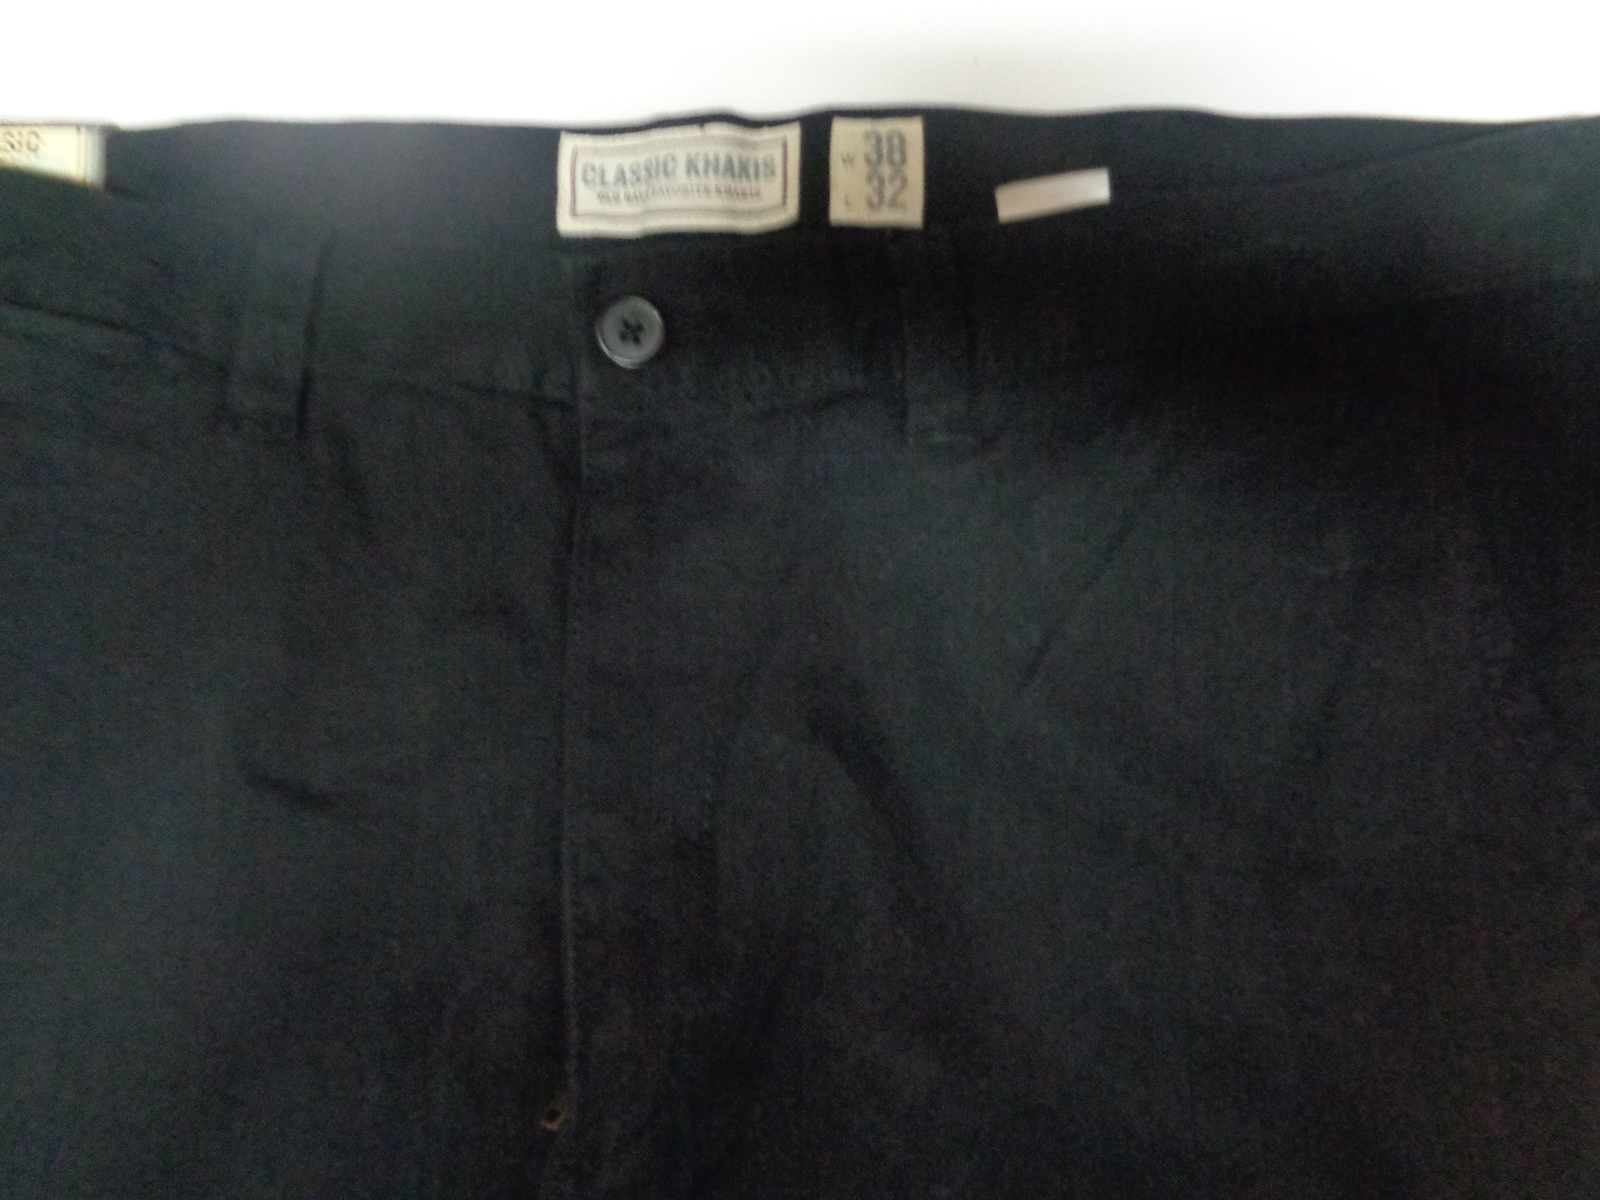 Old Navy Classic Khakis Black NWT Men's SZ 38/32 Just Below Waist Straight Leg